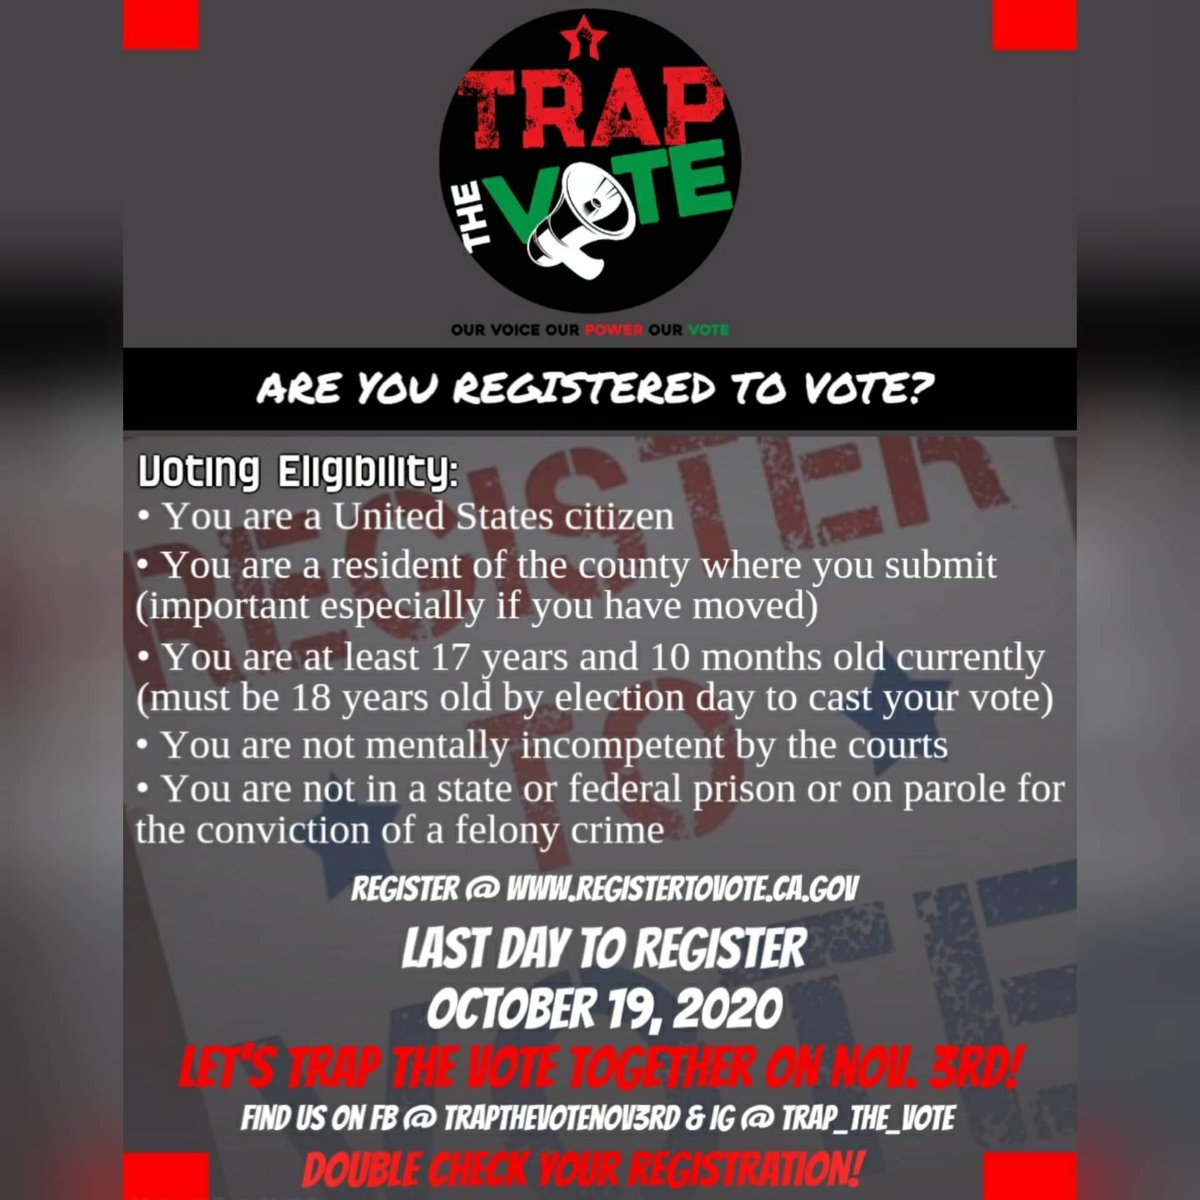 If you want to shake up the so called System of democracy you must register to vote......This isn't our only strategy but one that we must practice more diligently.....#traptheVote Nov 3rd #register2Vote https://t.co/9ZklLEZ0Ml